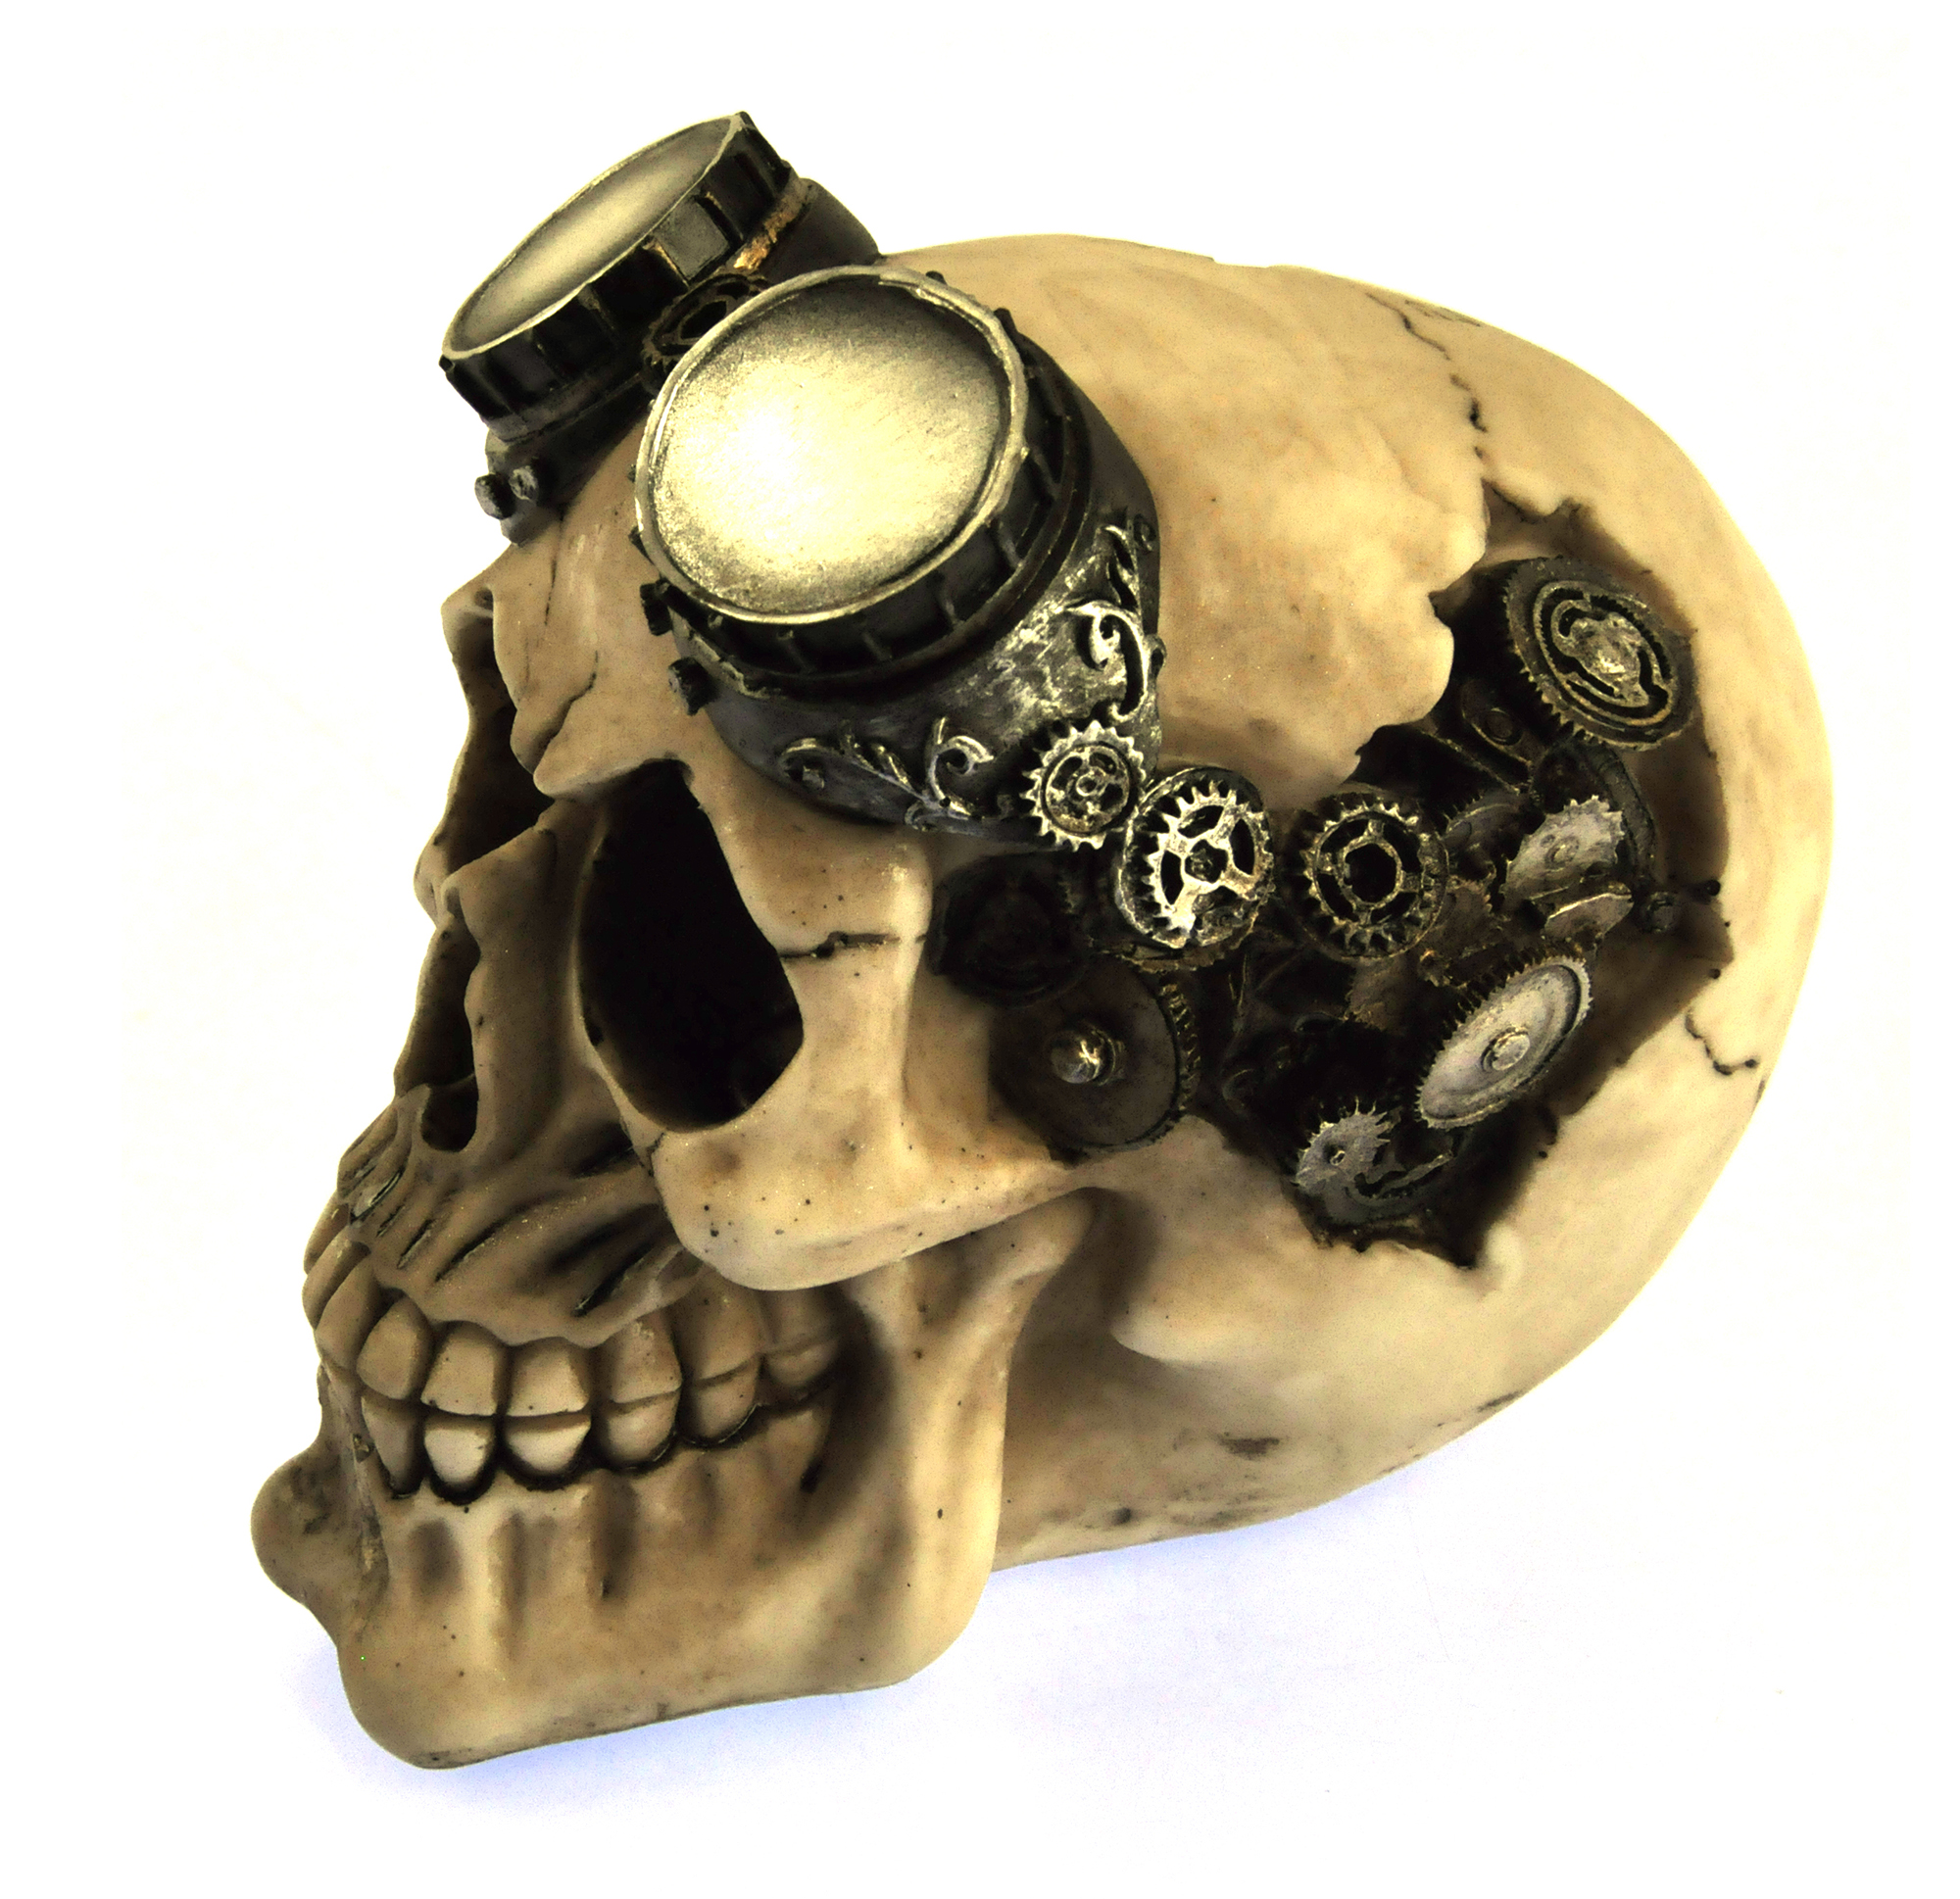 Steam Punk Skull Mechanical Brain And Goggles 15cm 6